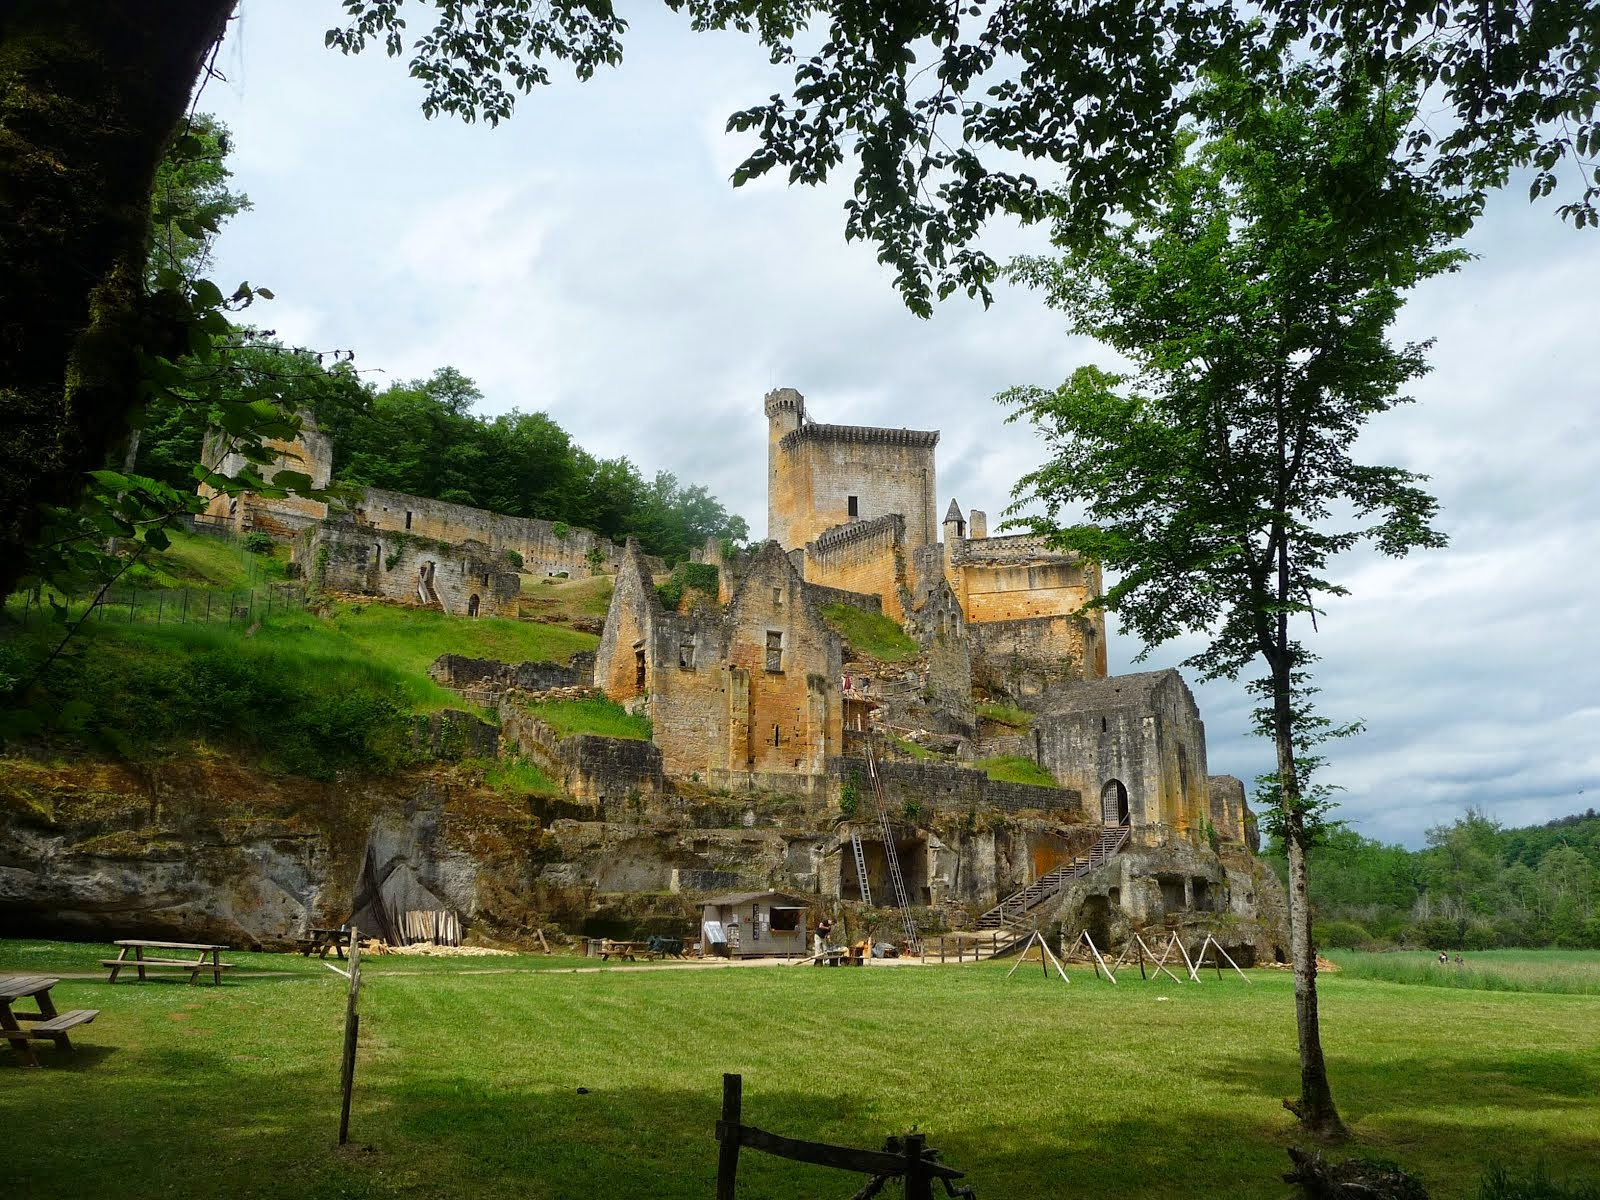 A castle in the forest near Sarlat